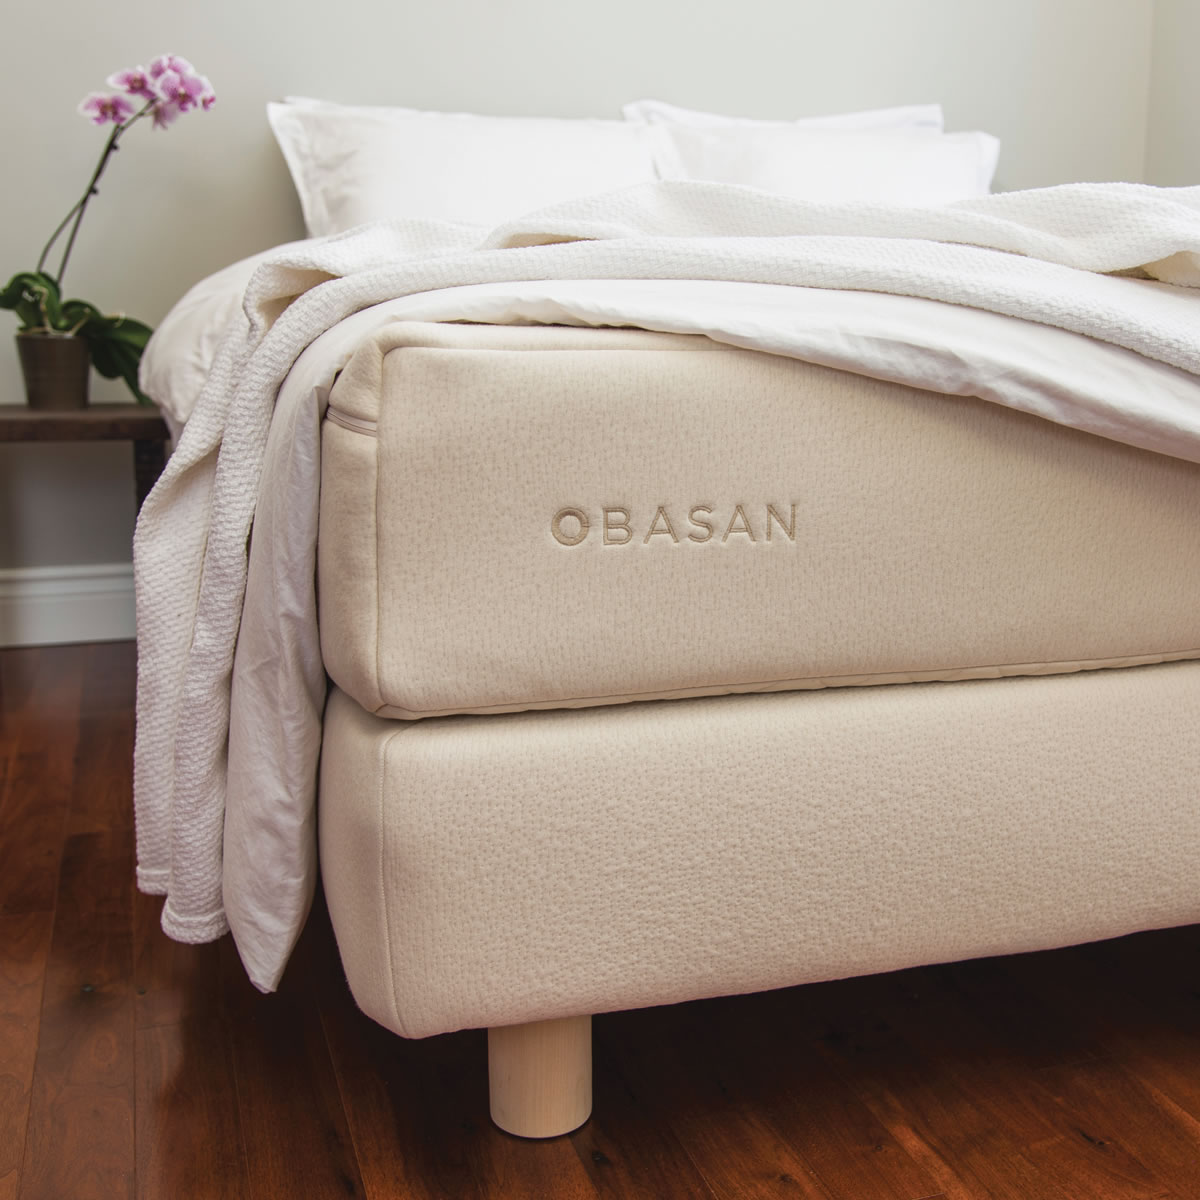 huge selection of 9fbe2 bace9 Ultimate Obasan Mattresses Guide | Mattress Reviews